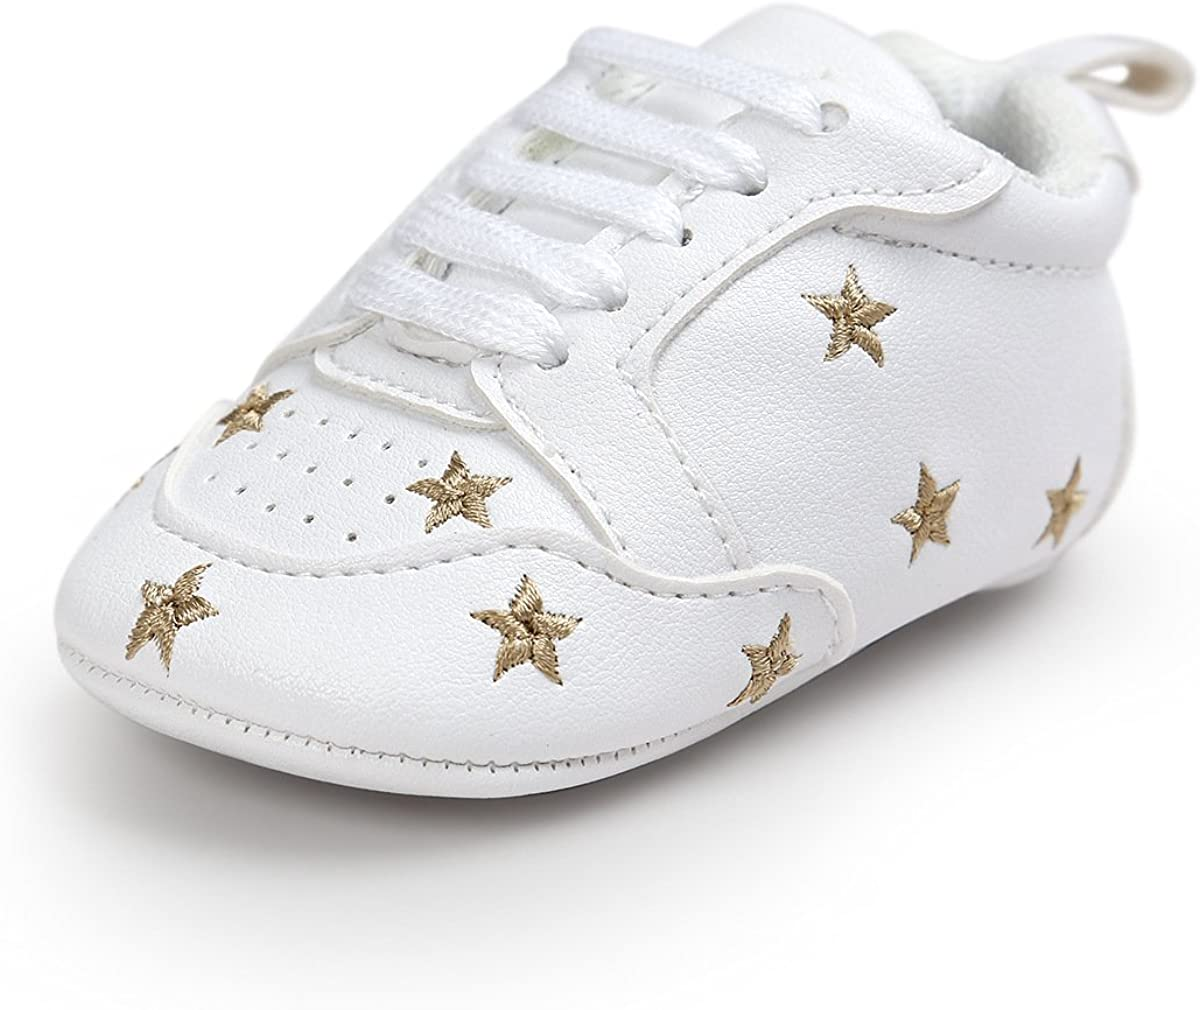 Infant Baby Girls Boys Sneaker Soft Soles Non Slip PU Leather Outdoor Lace up Toddler First Walkers Crib Shoes